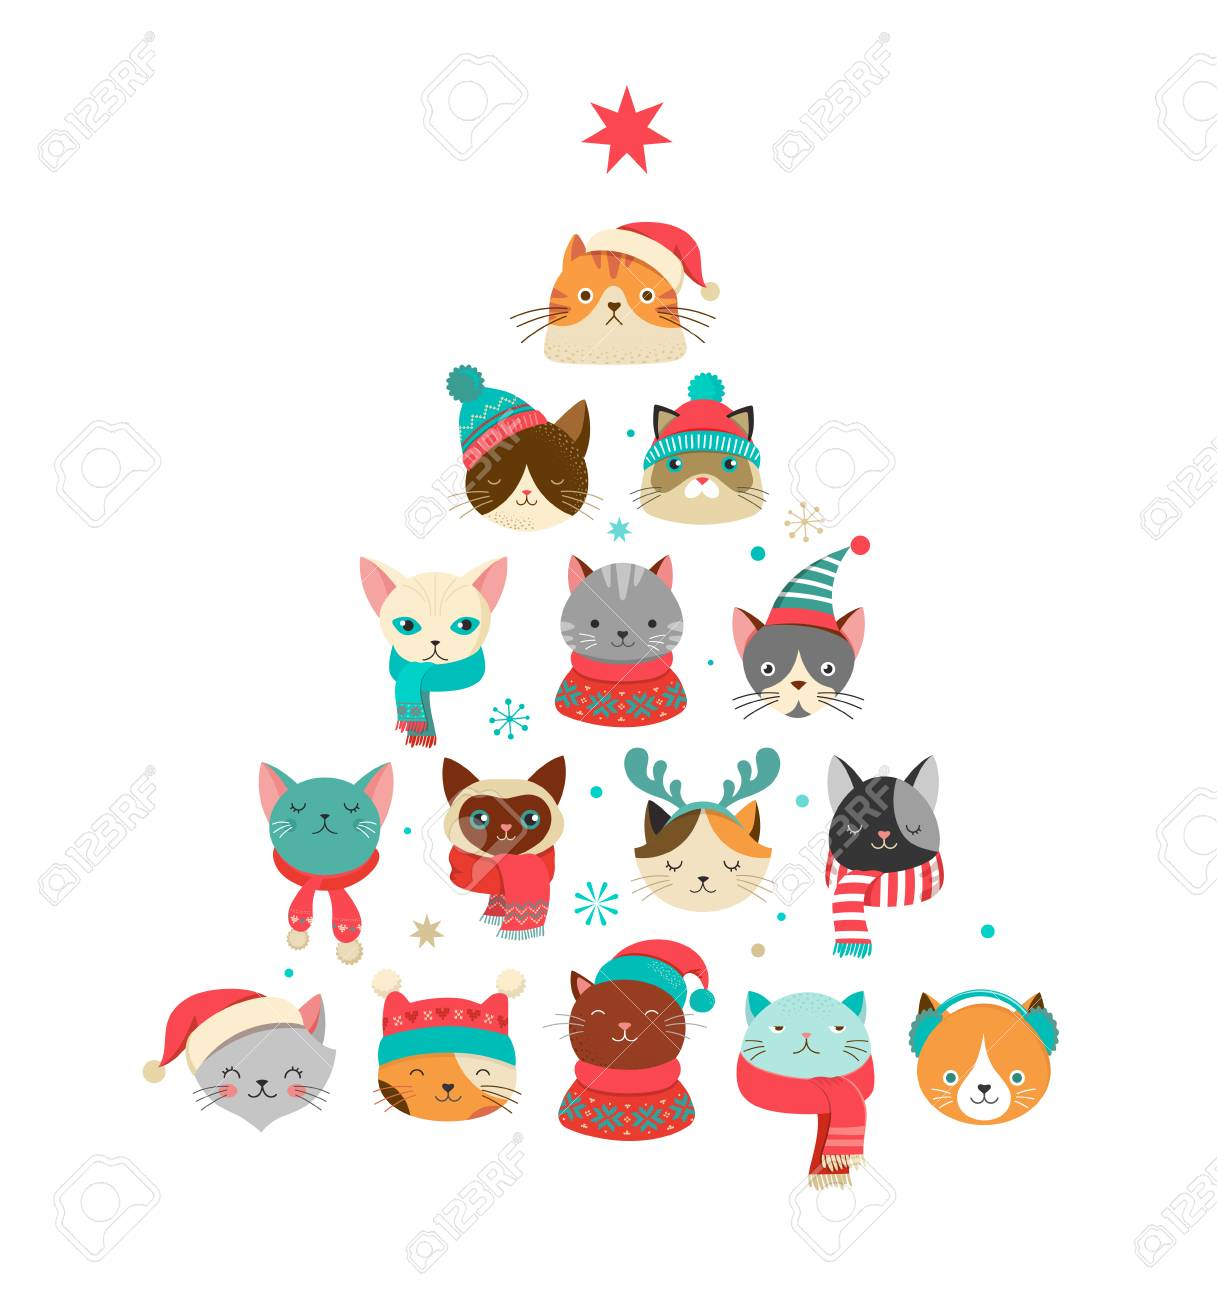 Christmas Illustrations.Collection Of Christmas Cats Merry Christmas Illustrations Of